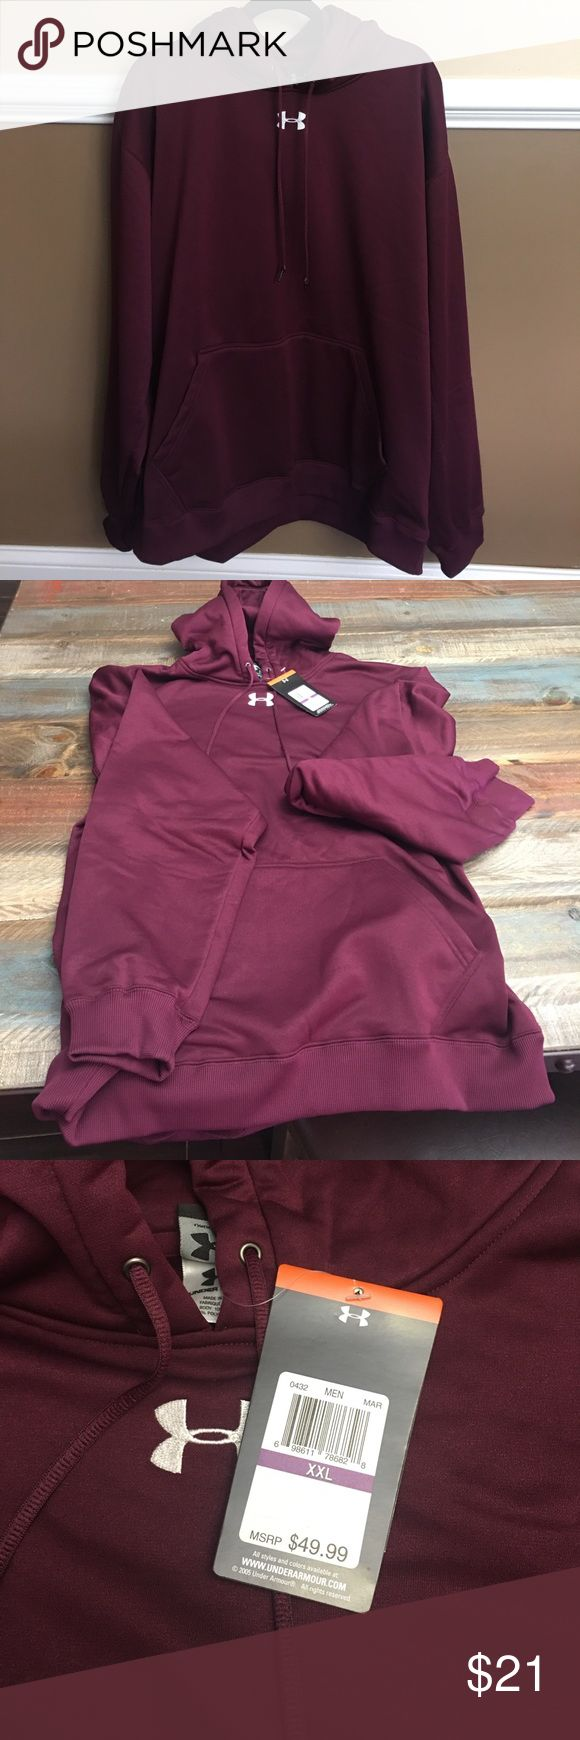 Men's New  Under Armour all season pullover hoodie Brand New Men's Under Armour Burgundy/ Wine colored pullover hoodie Under Armour Shirts Sweatshirts & Hoodies